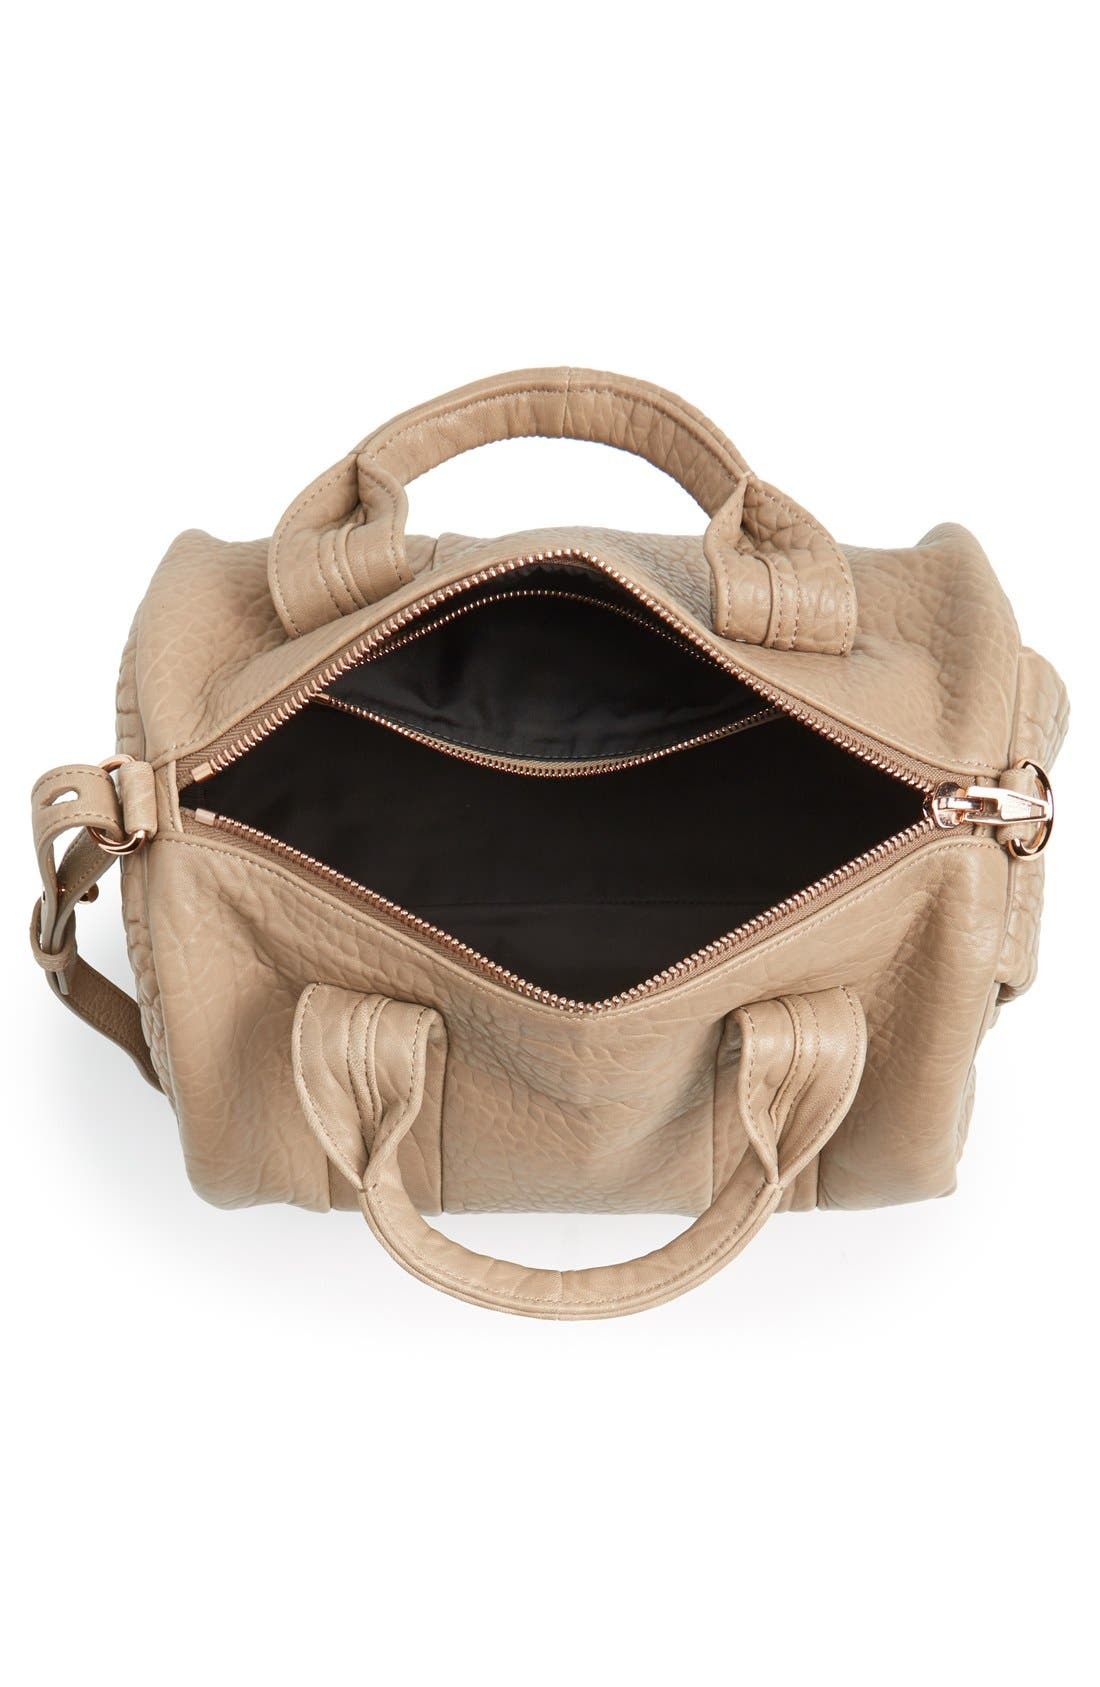 ALEXANDER WANG, 'Rocco - Rose Gold' Leather Satchel, Alternate thumbnail 2, color, 250